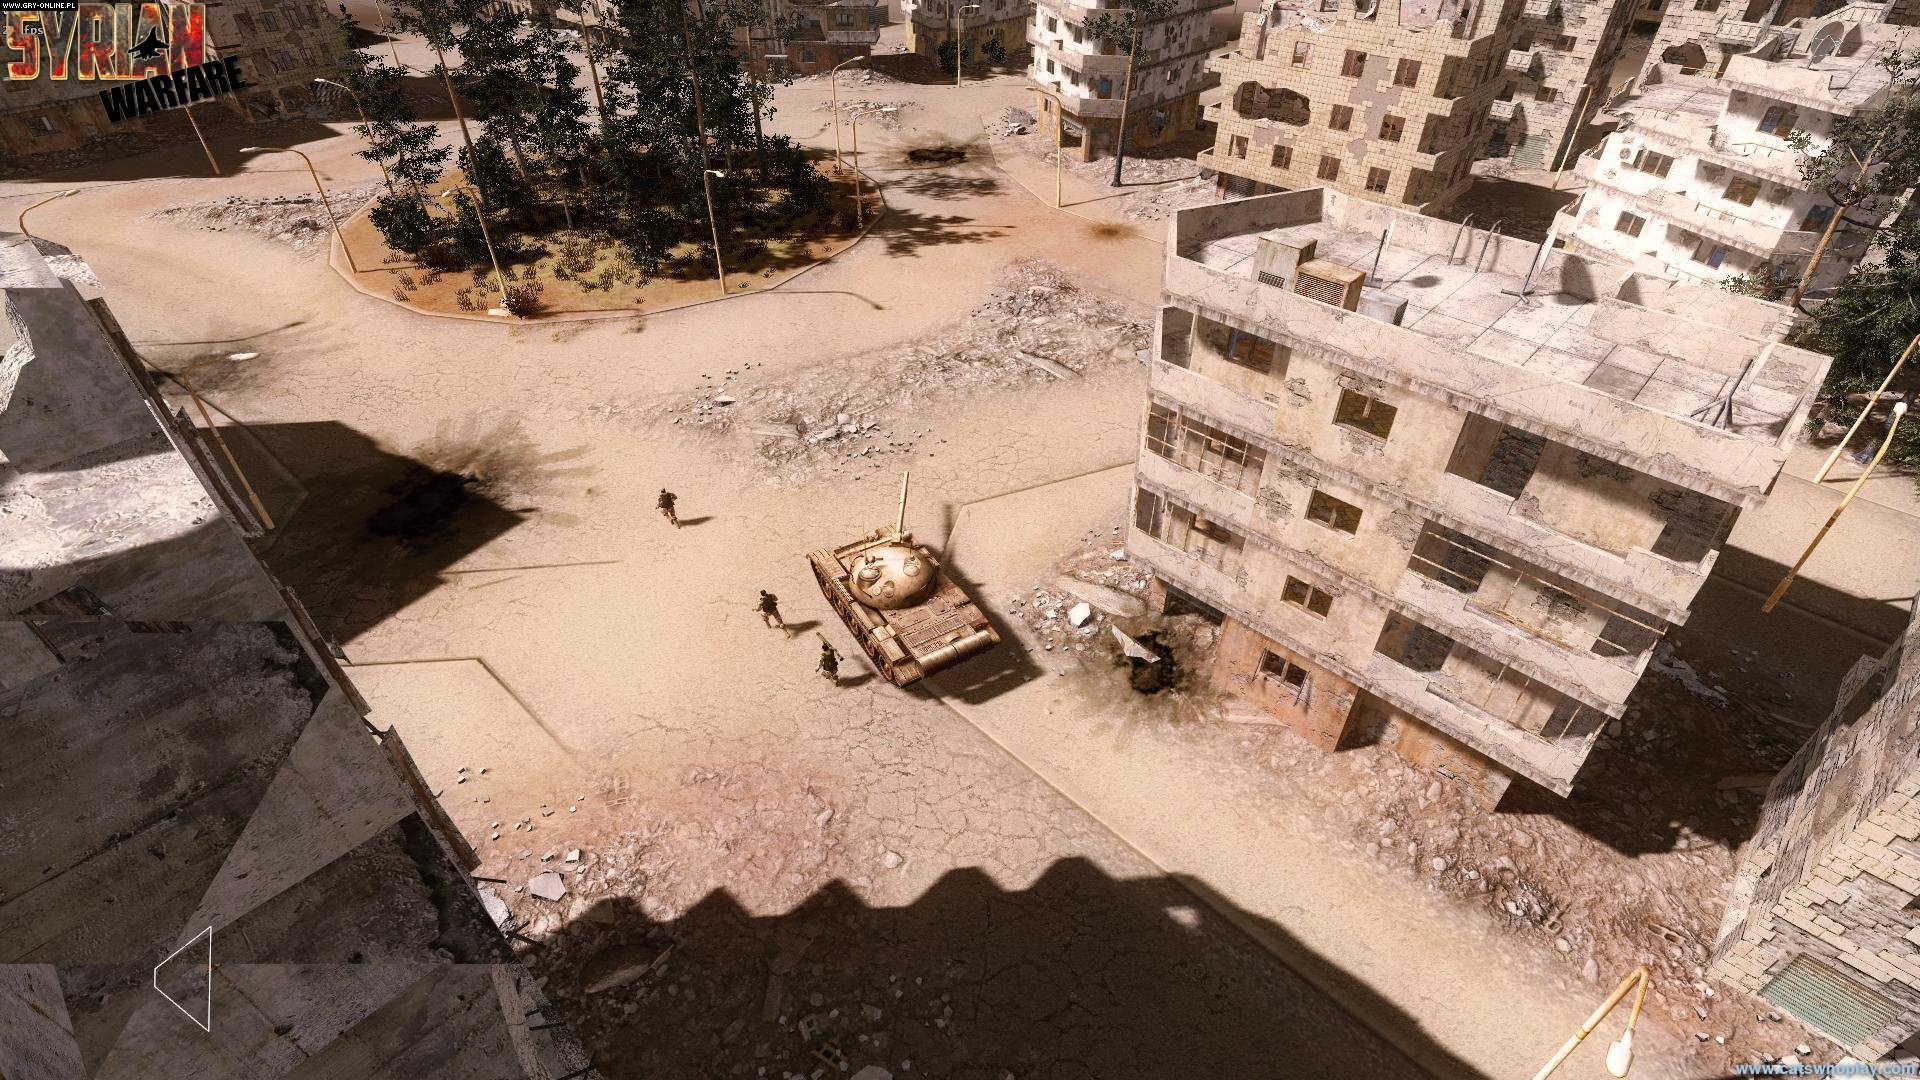 Syrian Warfare PC Games Image 15/15, Cats who play